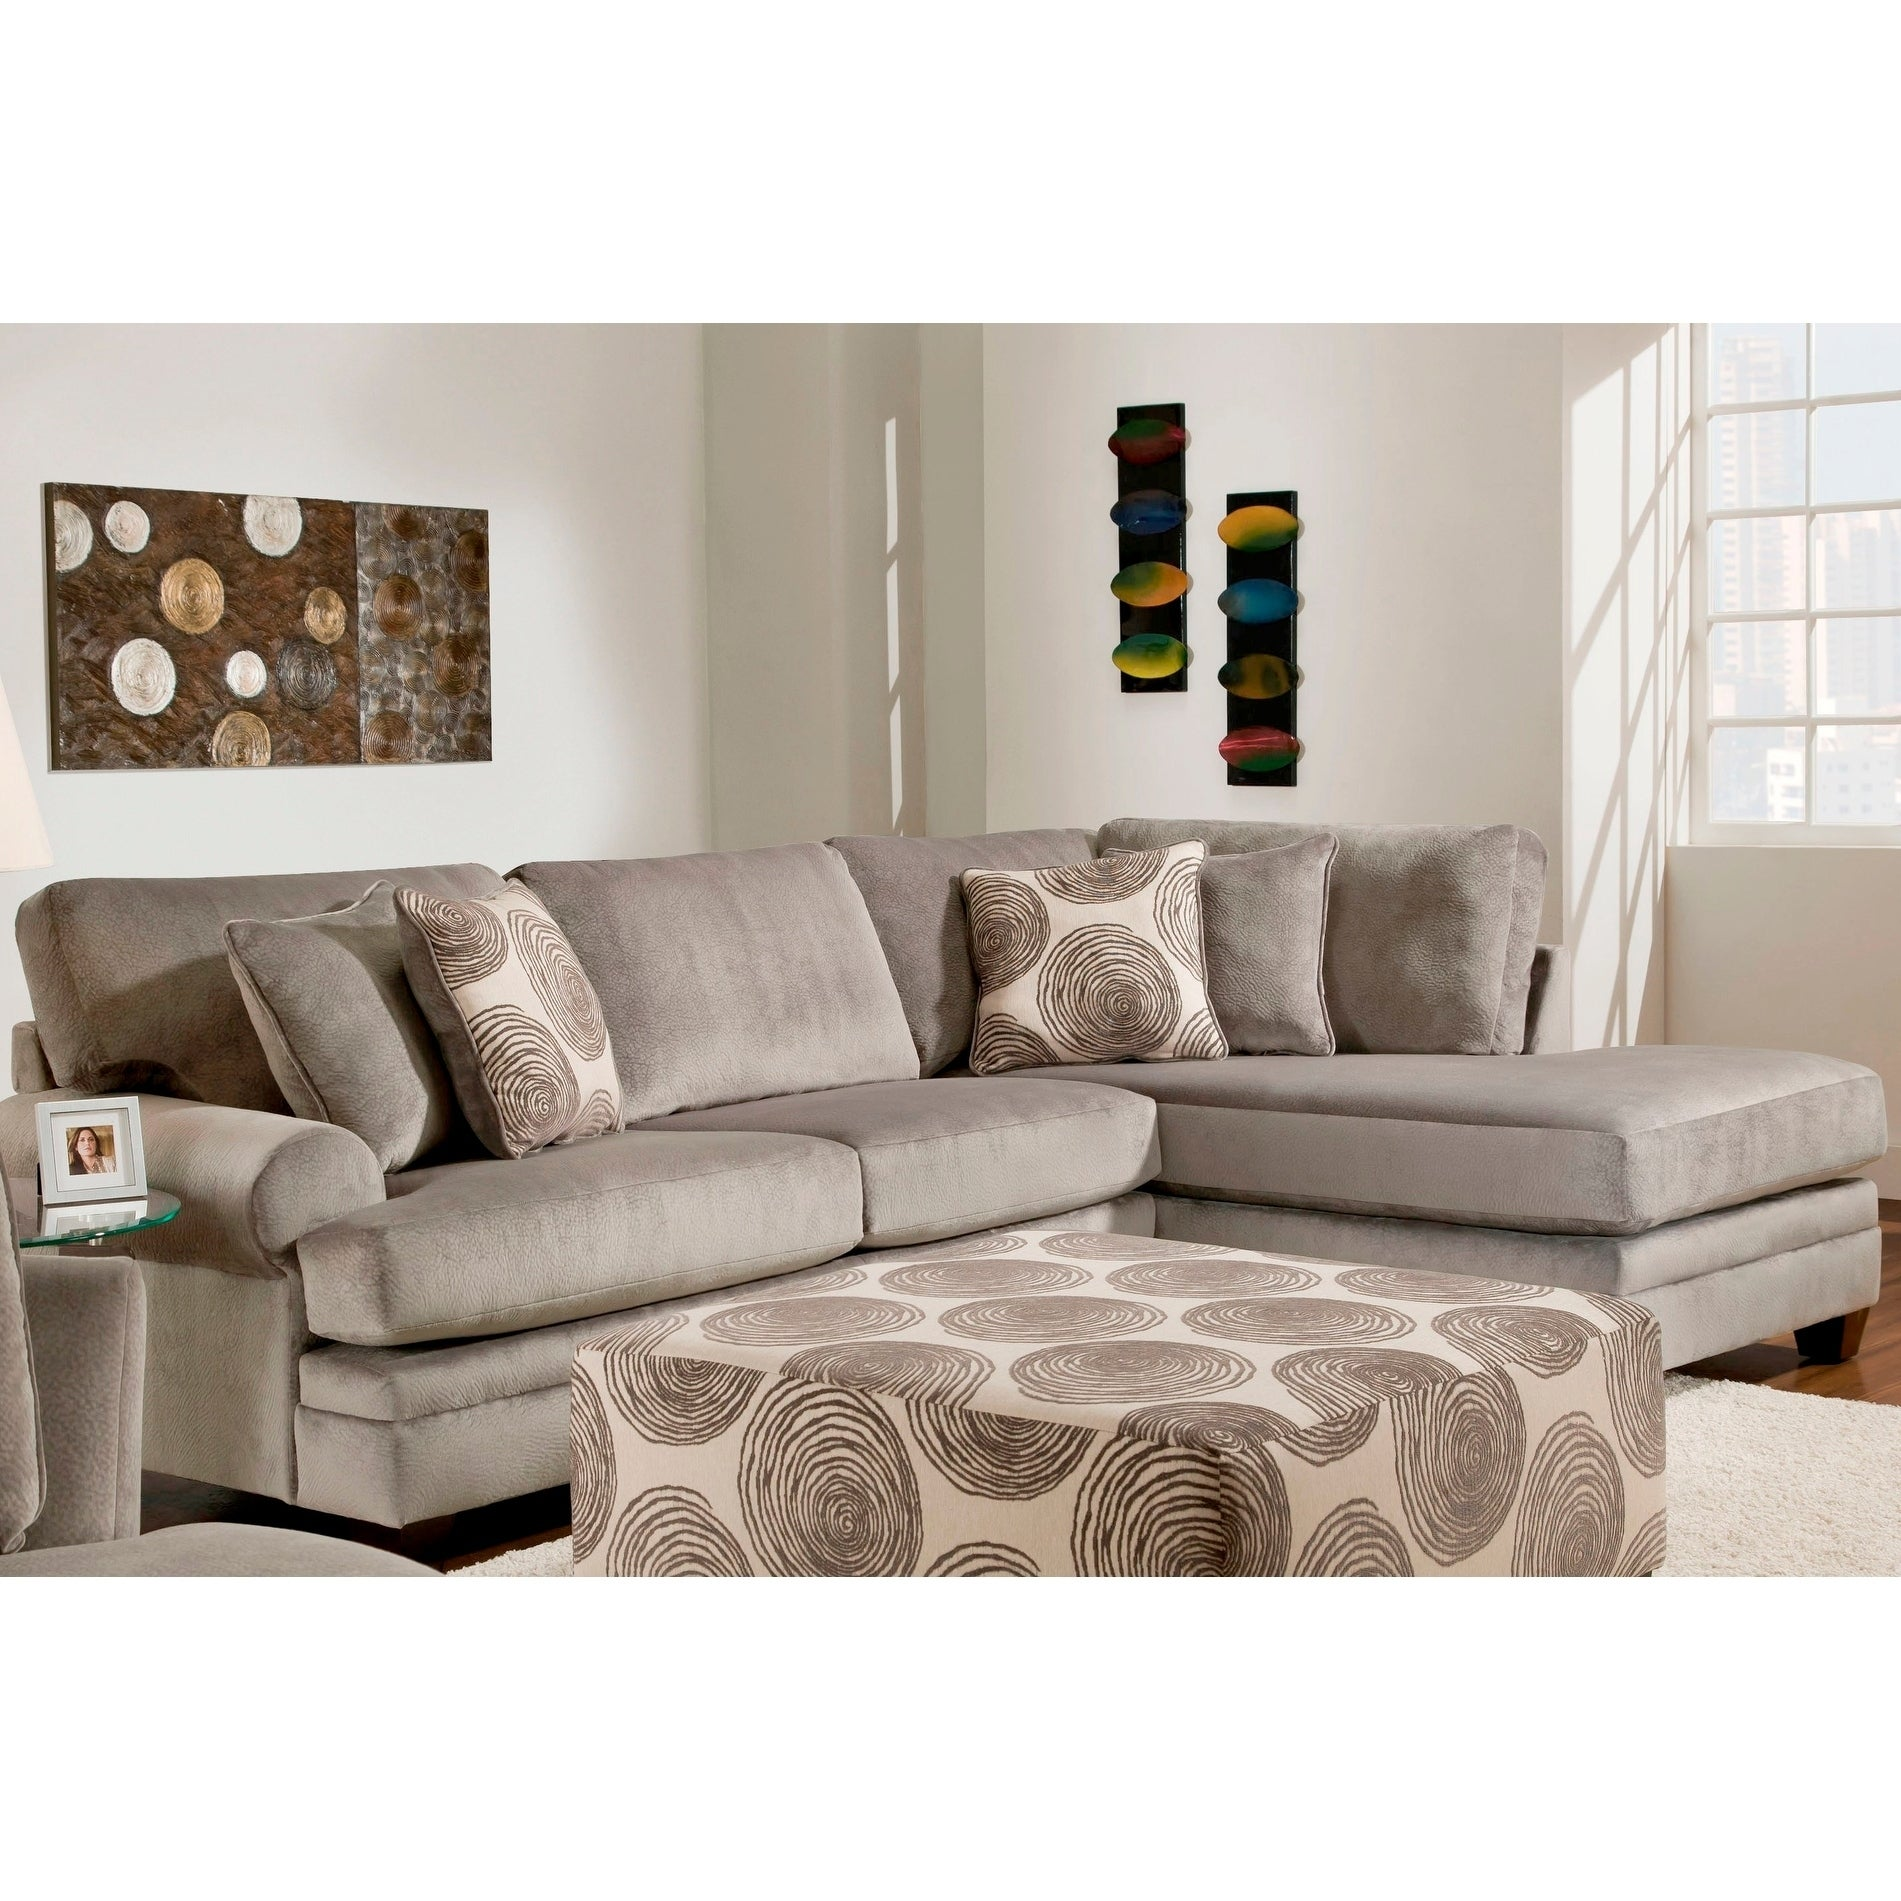 Shop sofatrendz padded micro suede sectional free shipping today overstock com 18113834